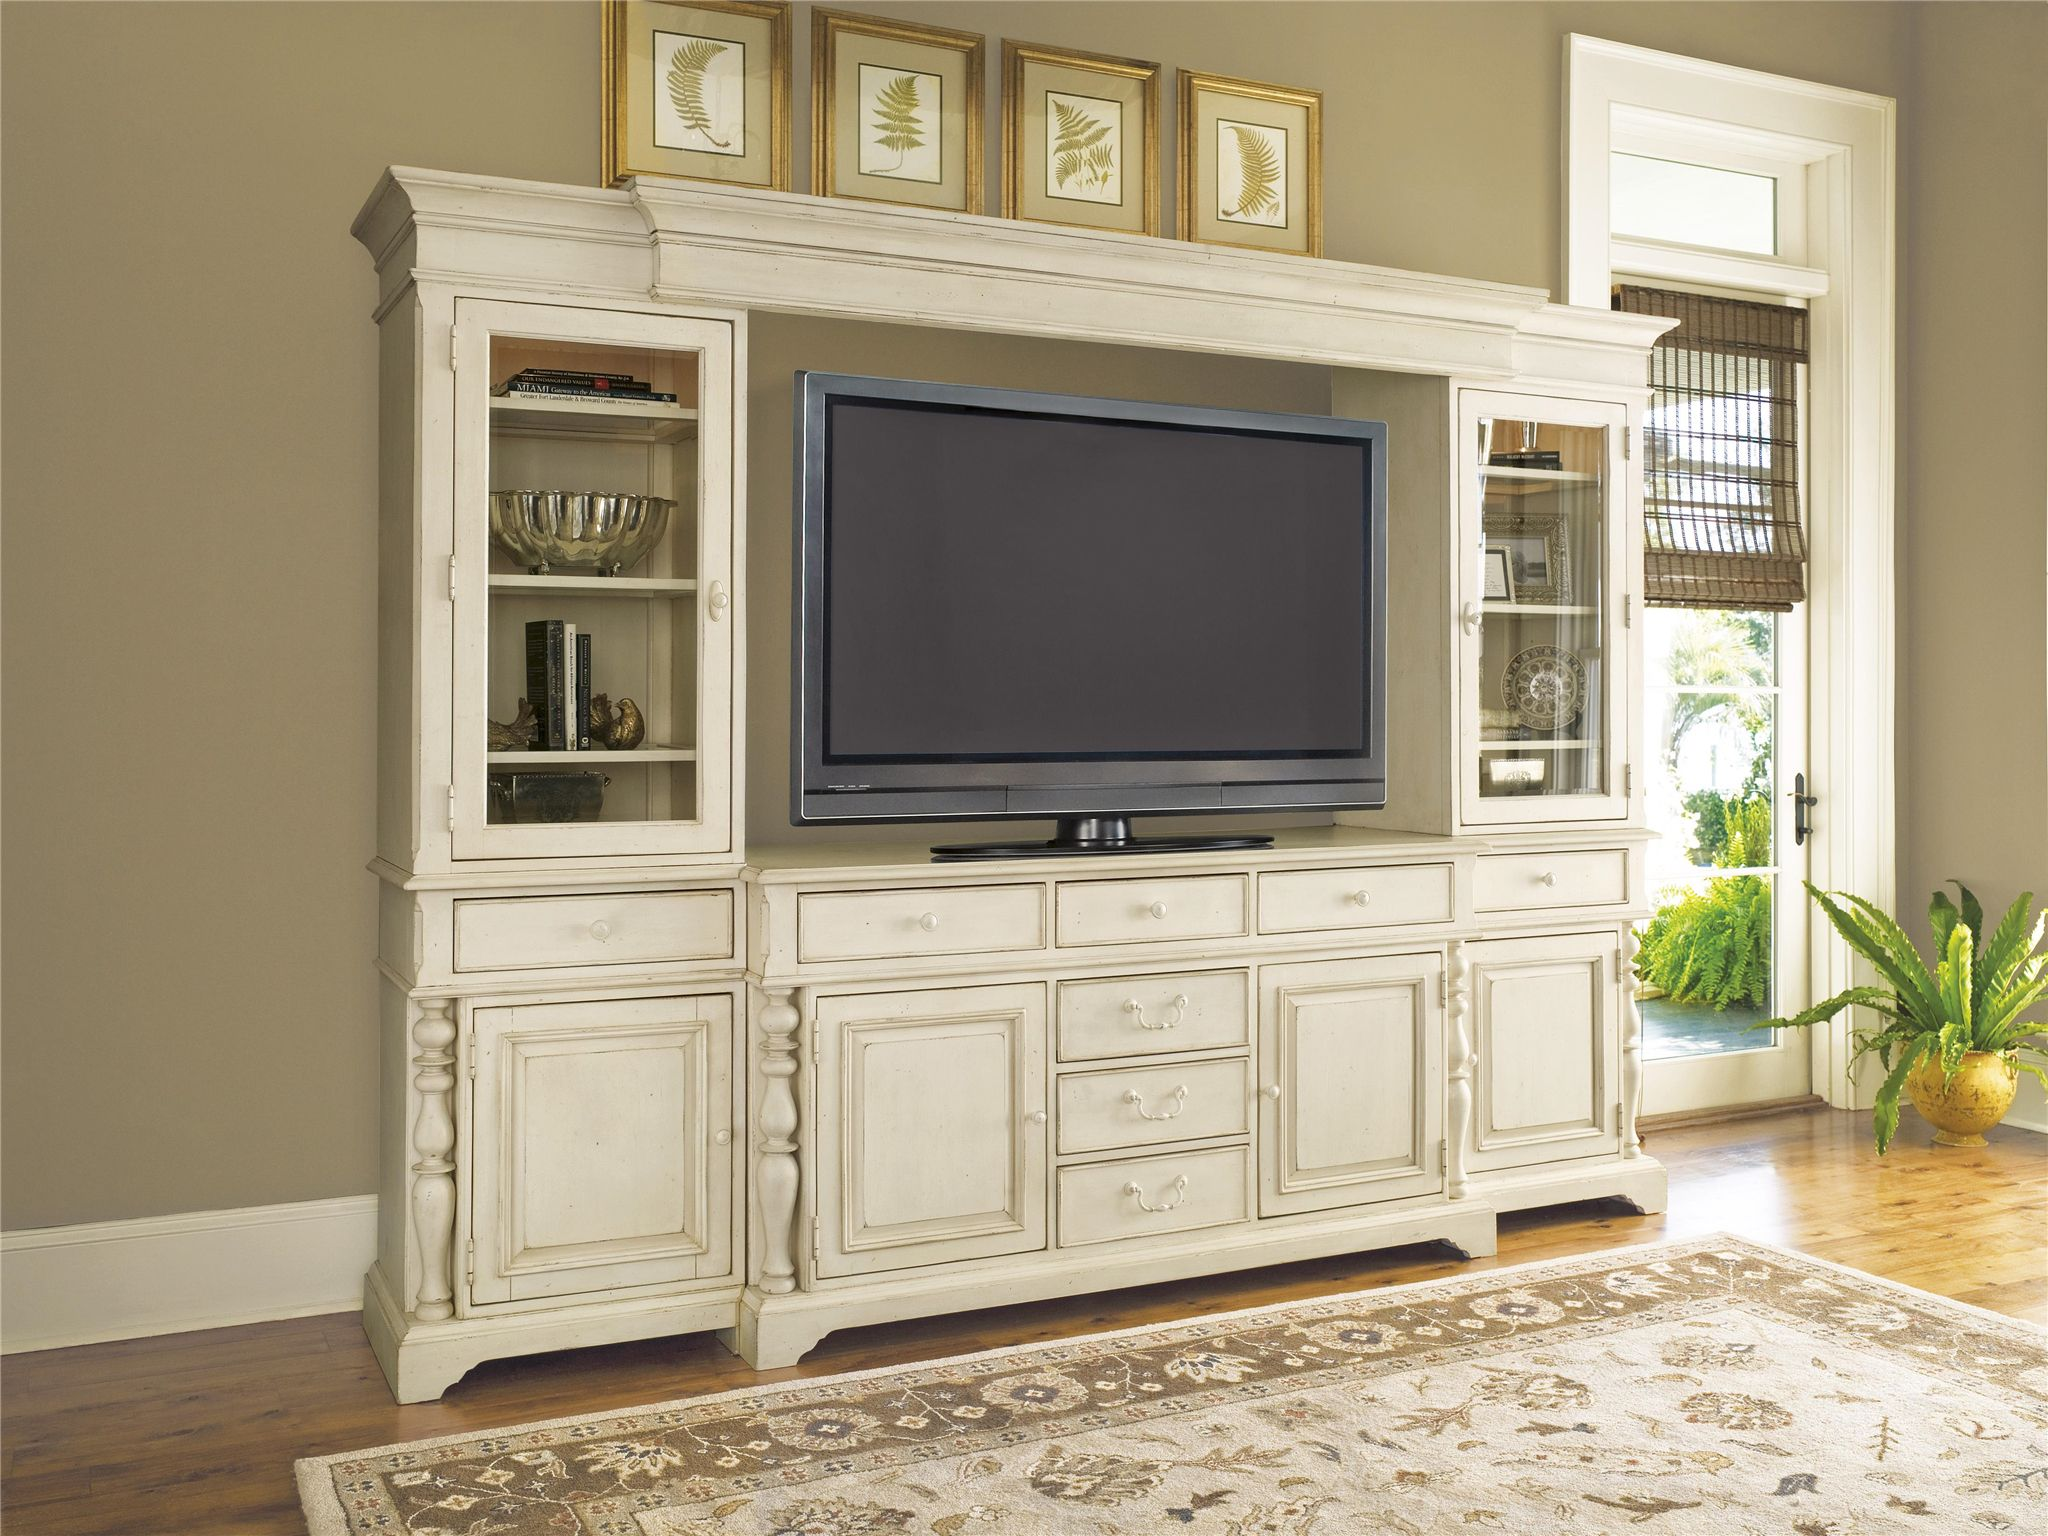 Universal Paula Deen Home Entertainment Wall System